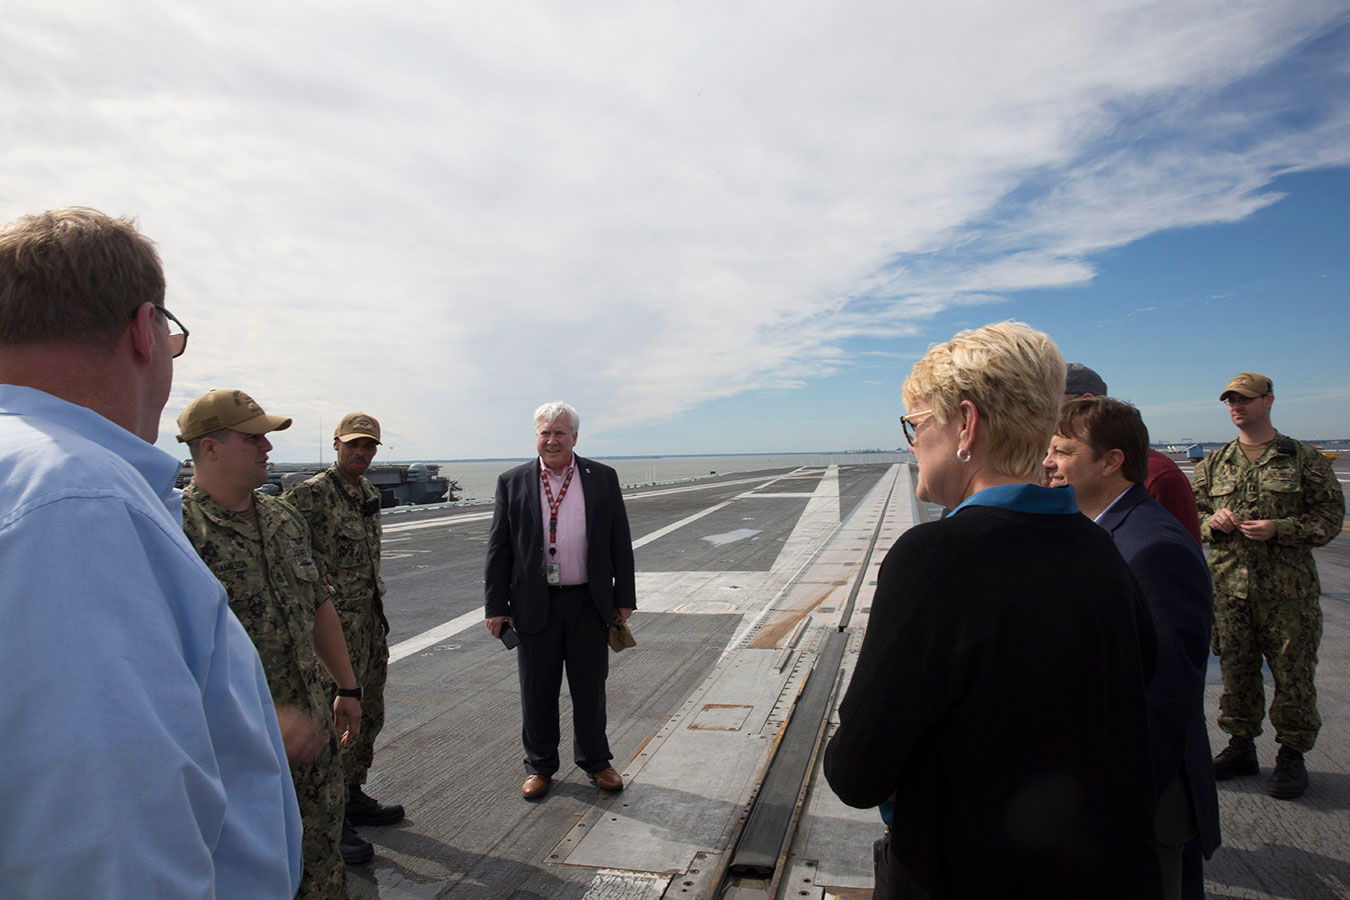 Chief Privacy Officer and Commissioner on Flight Deck